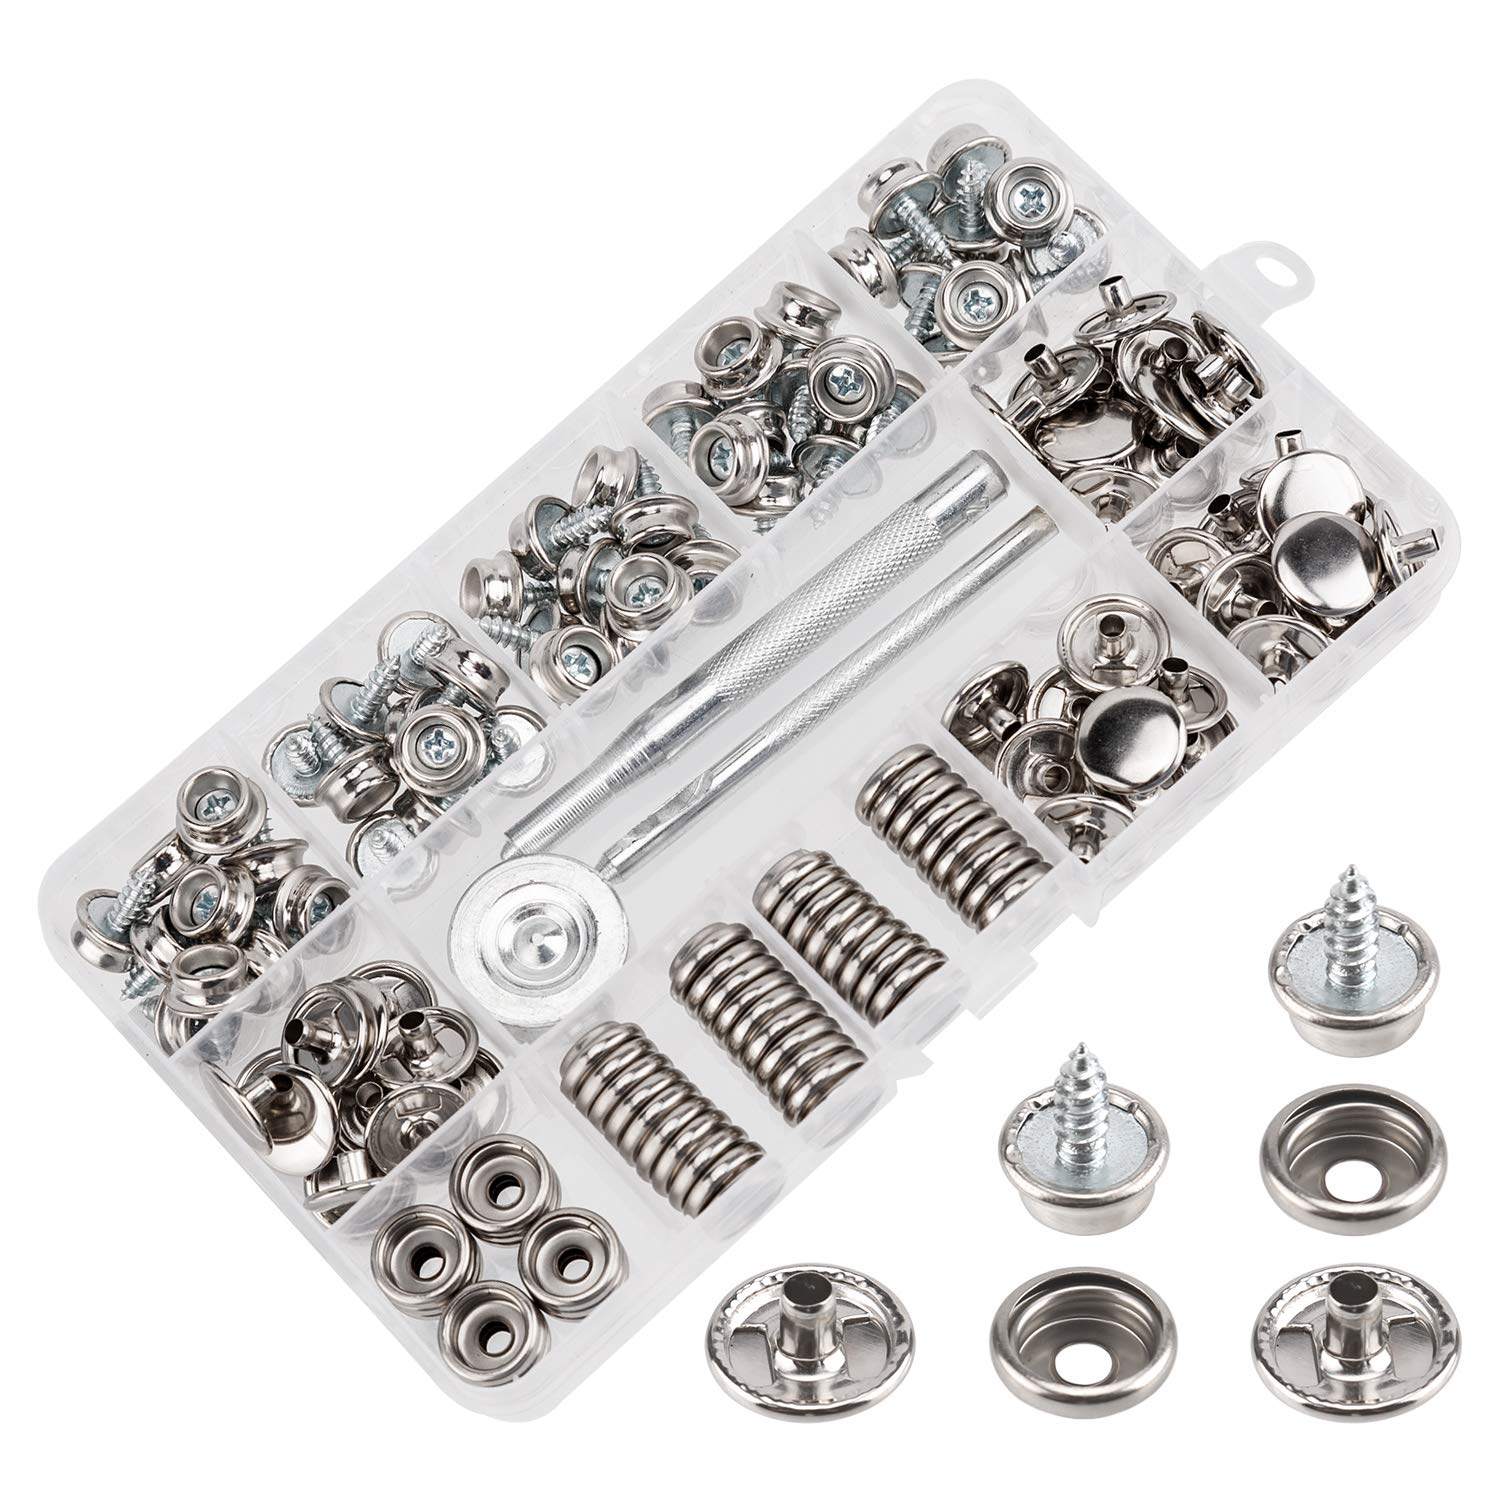 AIEX 150 PCS Canvas Snaps Kit, Stainless Steel Fastener Screw Snaps for Furniture Canvas Marine Grade Boat Cover Snap Silver Metal Snap Button Kit with 3 PCS Setting Tool (50 Sets) by AIEX